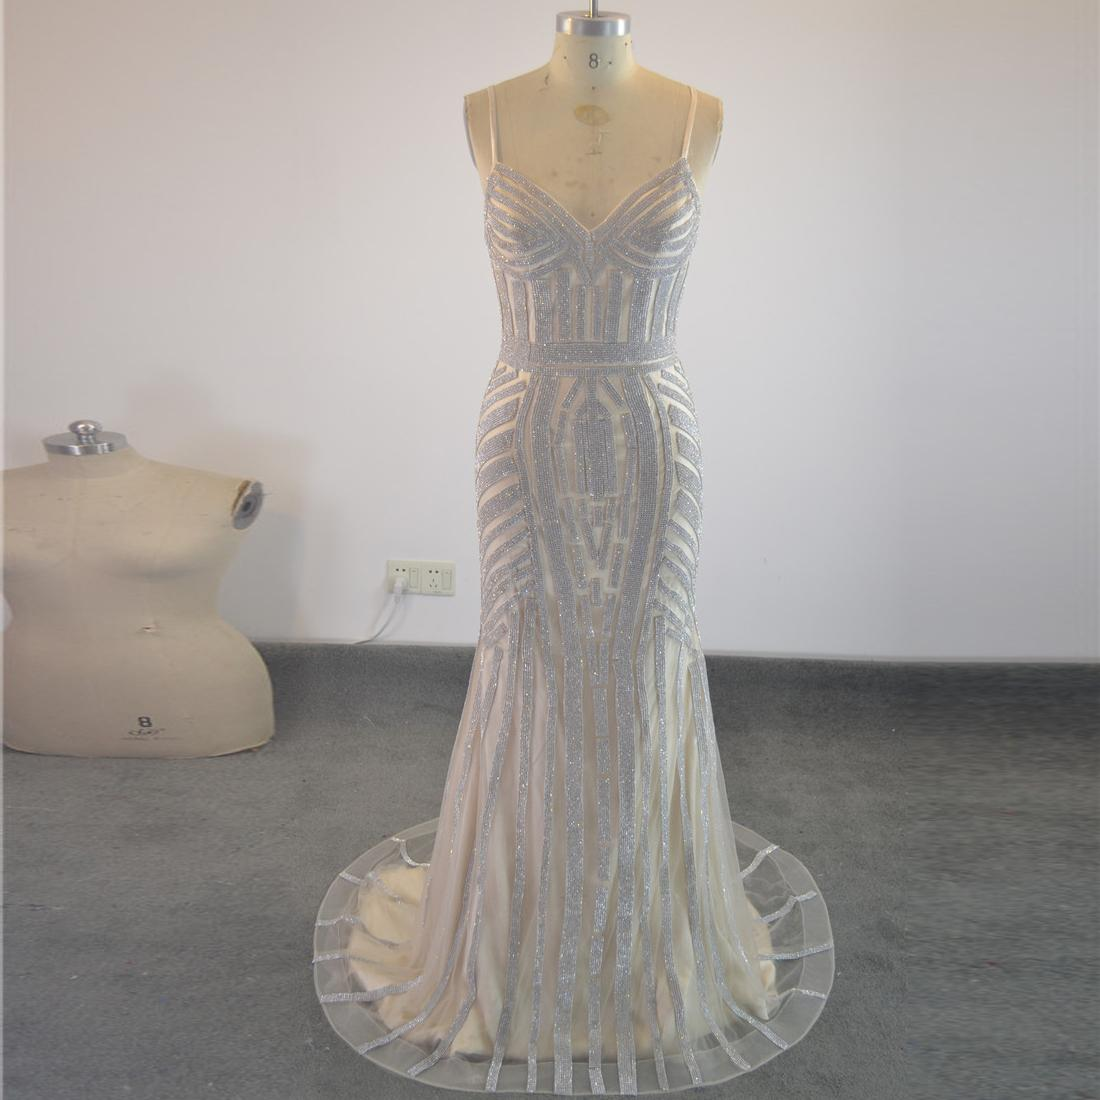 201d78a80303 New Style Luxury Heavy Beading Crystal Mermaid Long V Neck Tulle Evening  Dresses Sexy Prom Dress 2018 Casual Evening Dresses Discount Evening Dresses  From ...